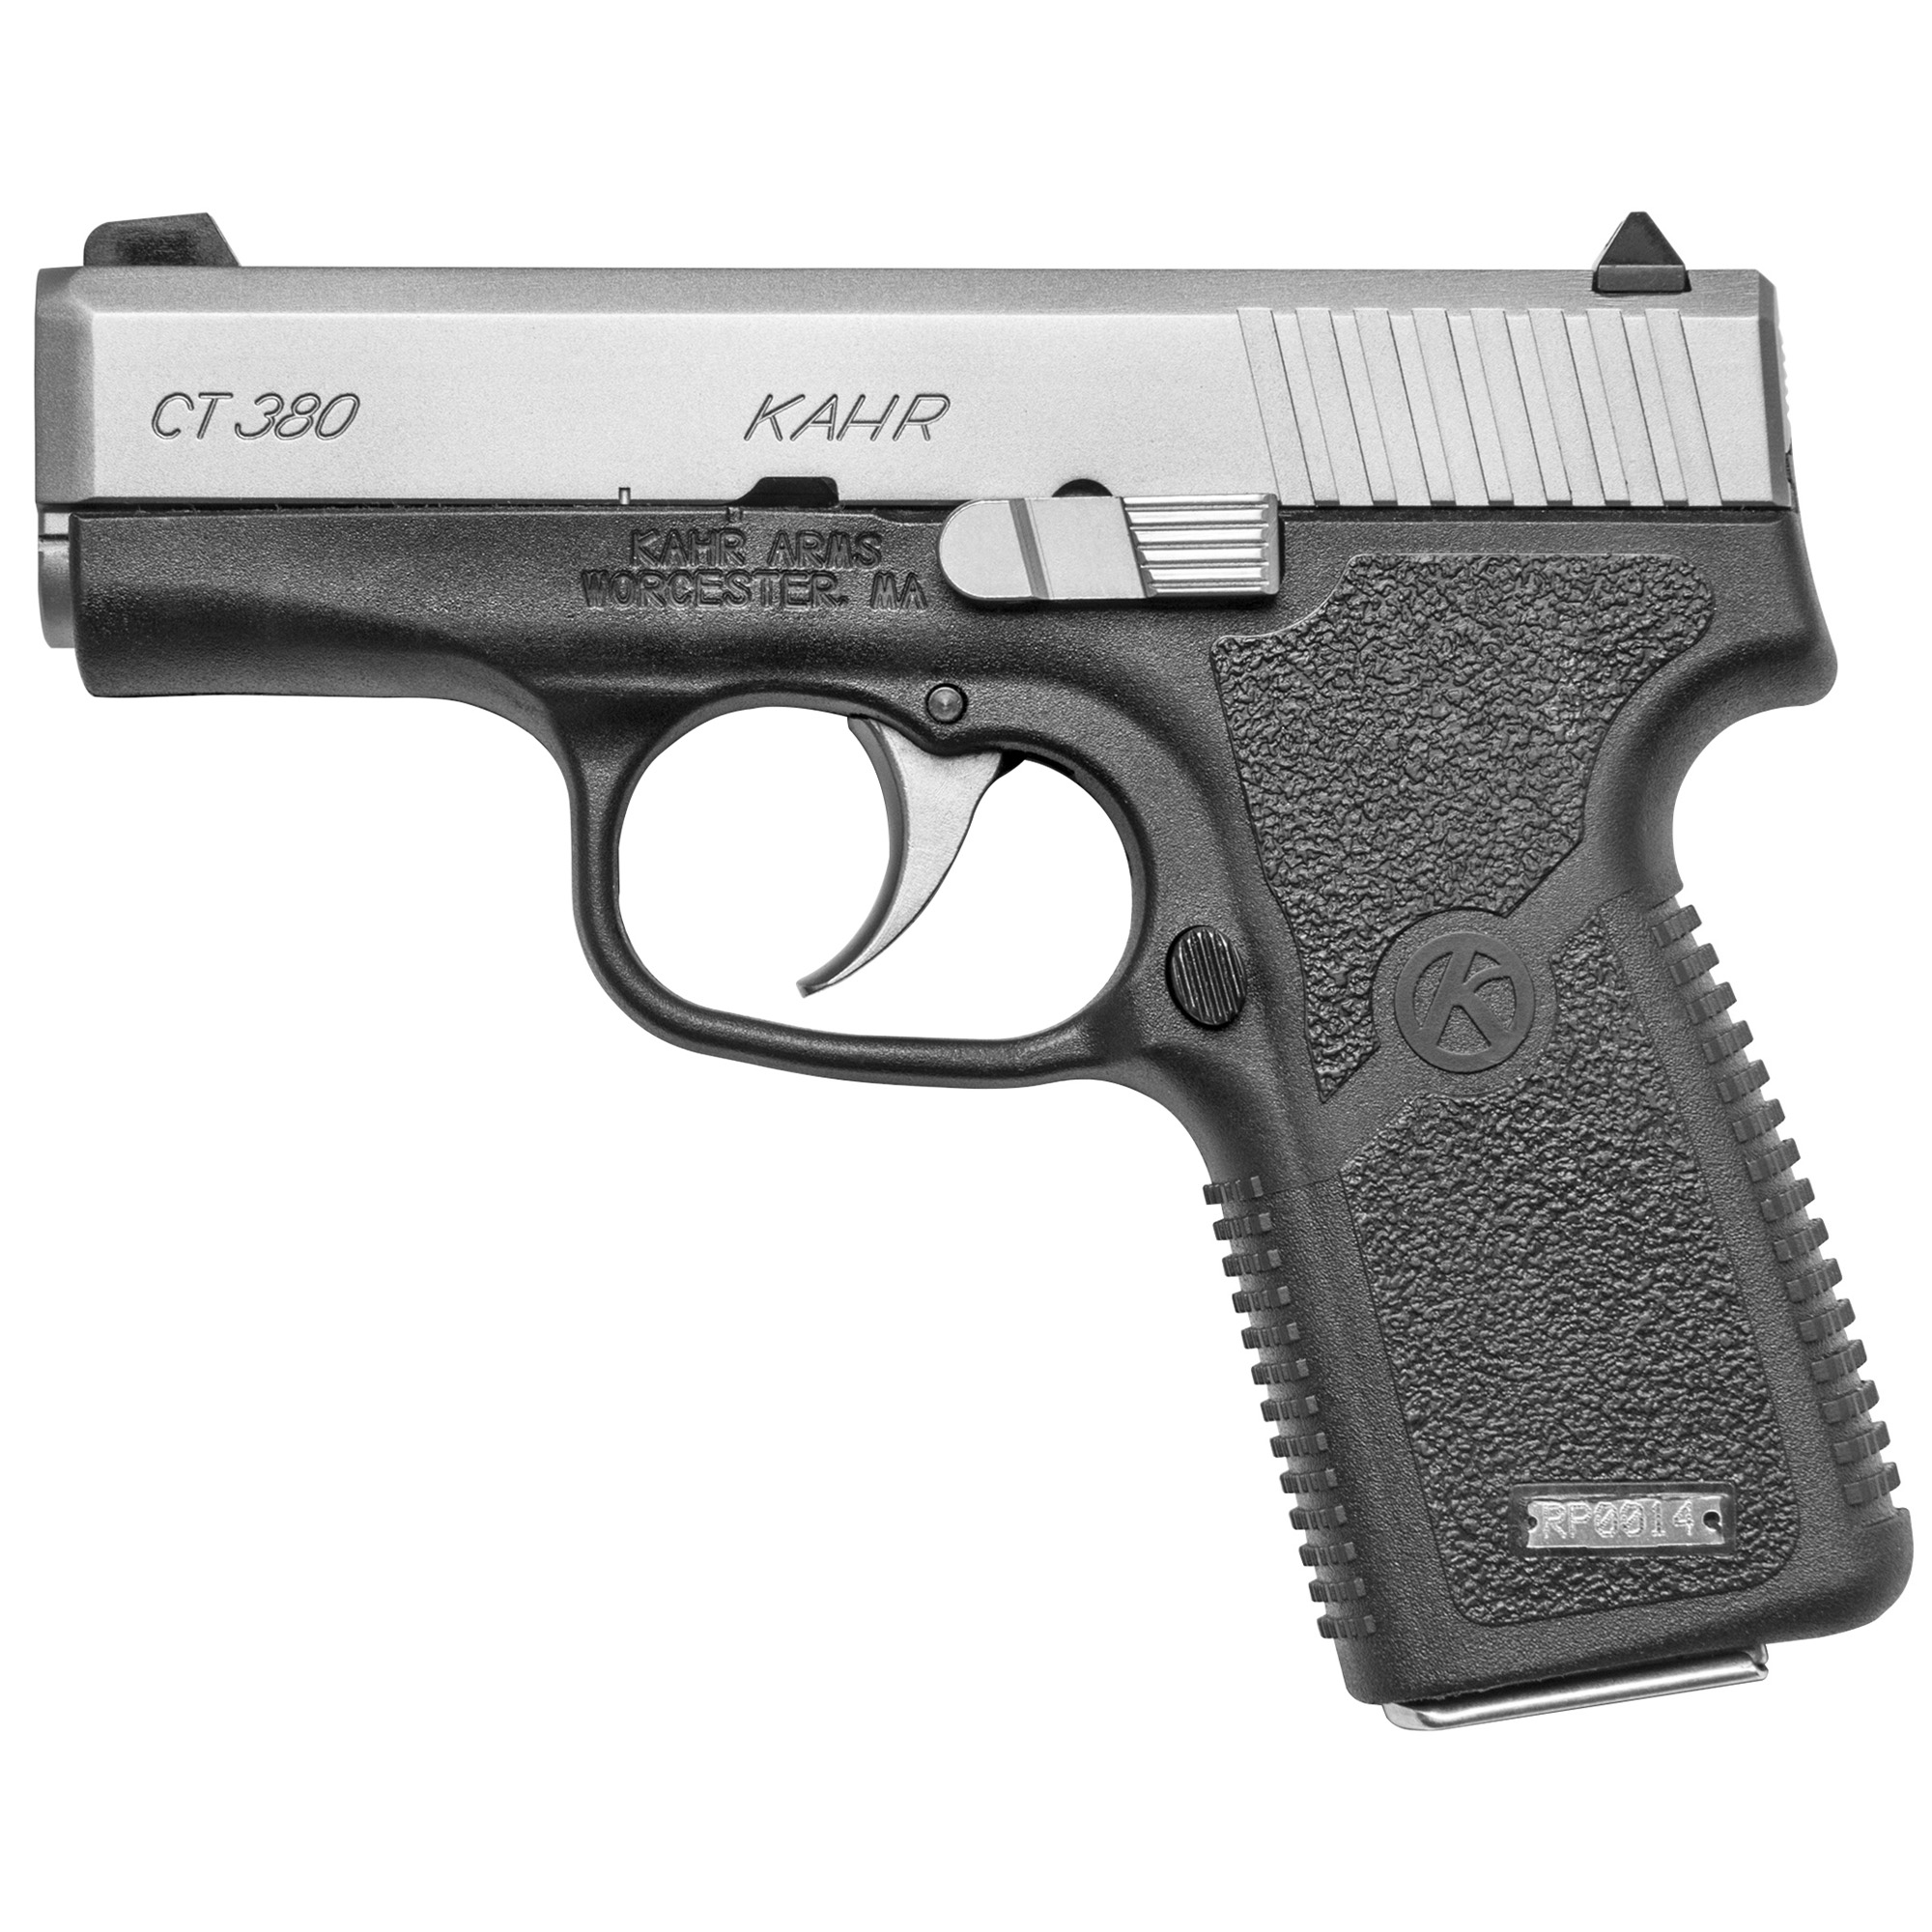 """The Kahr Value Series has a combination of features that make them the best Concealed Carry Pistols on the market. They have the ideal combination of stopping power and shooting comfort"""" and they are smaller"""" thinner and lighter than competitive brands. The natural point of aim and low-felt recoil make them the ideal guns to shoot and carry."""